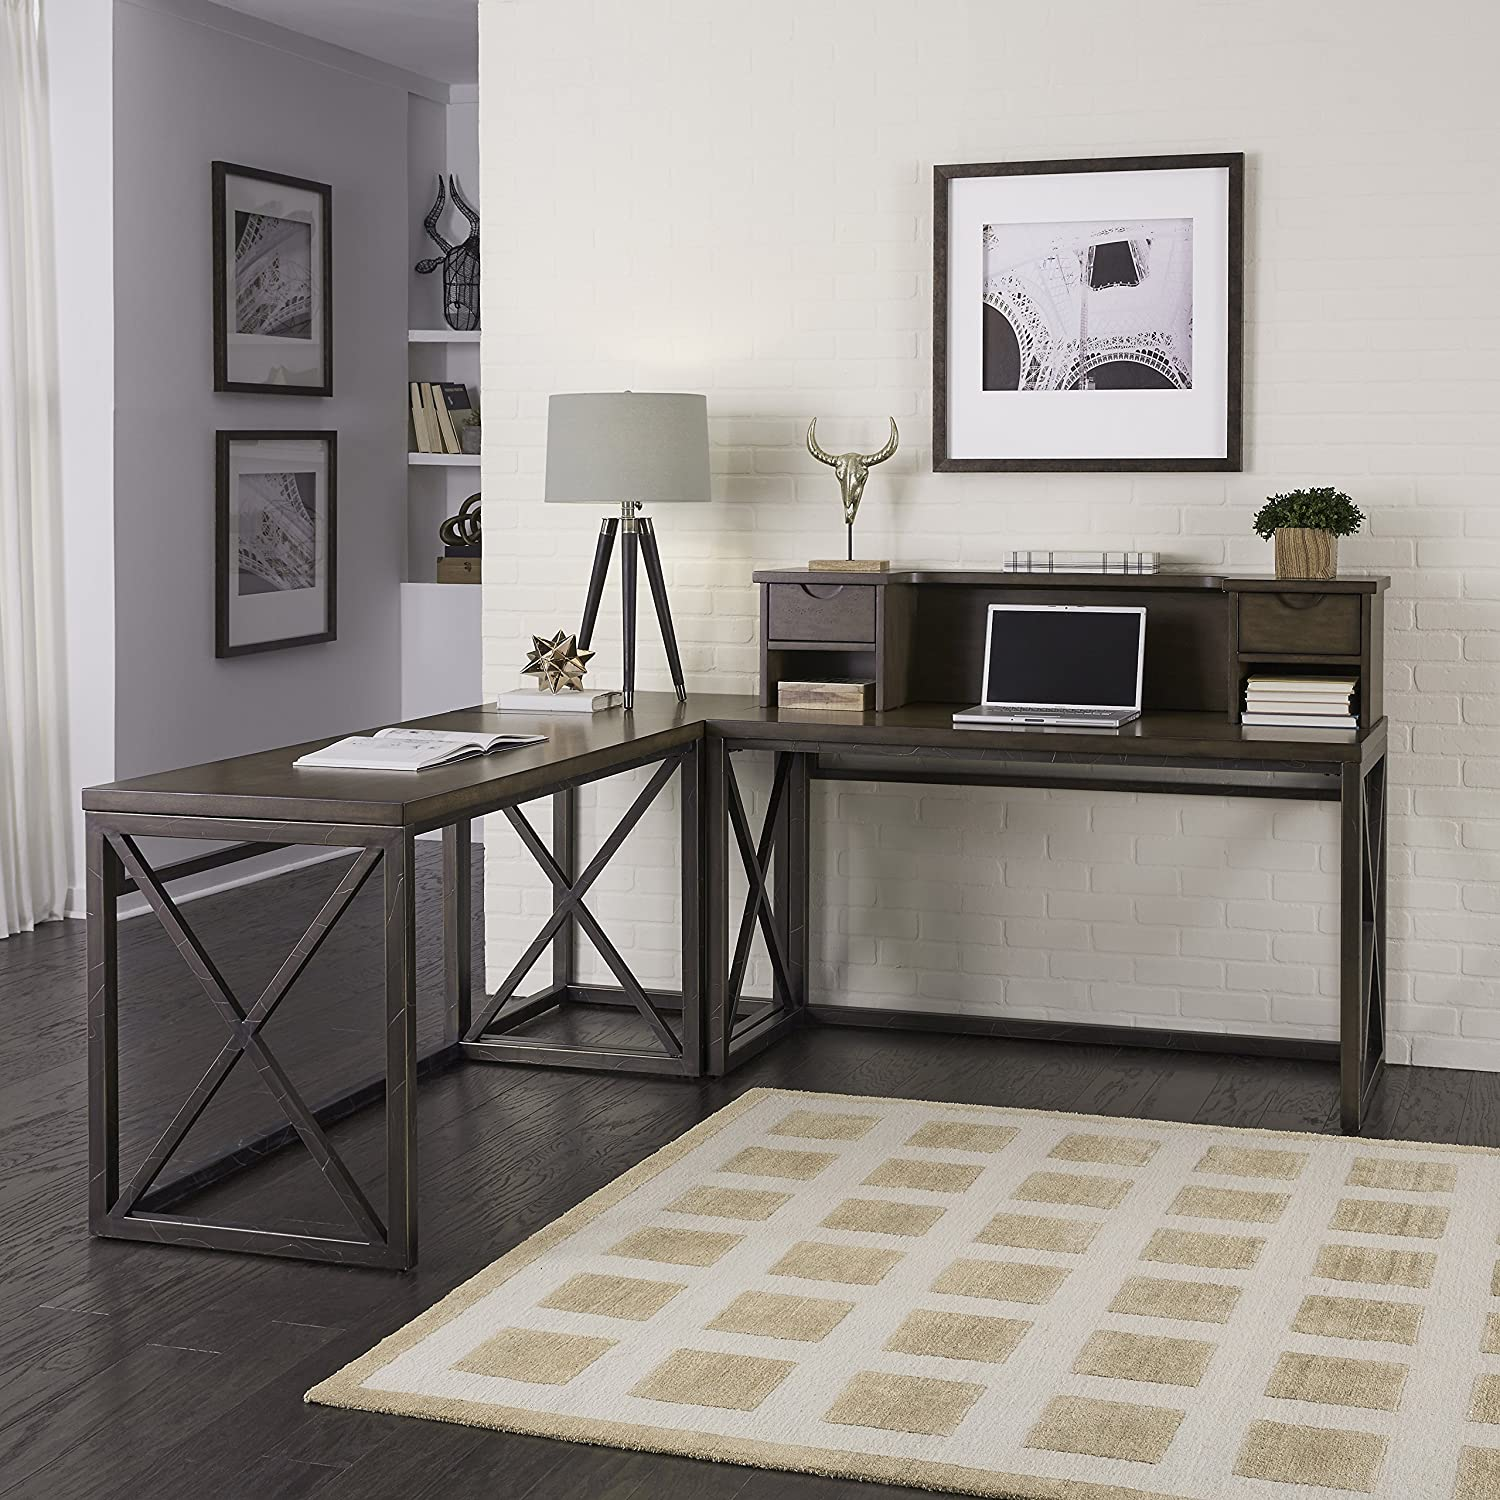 Xcel Cinnamon Finish Home Office Ensemble by Home Styles